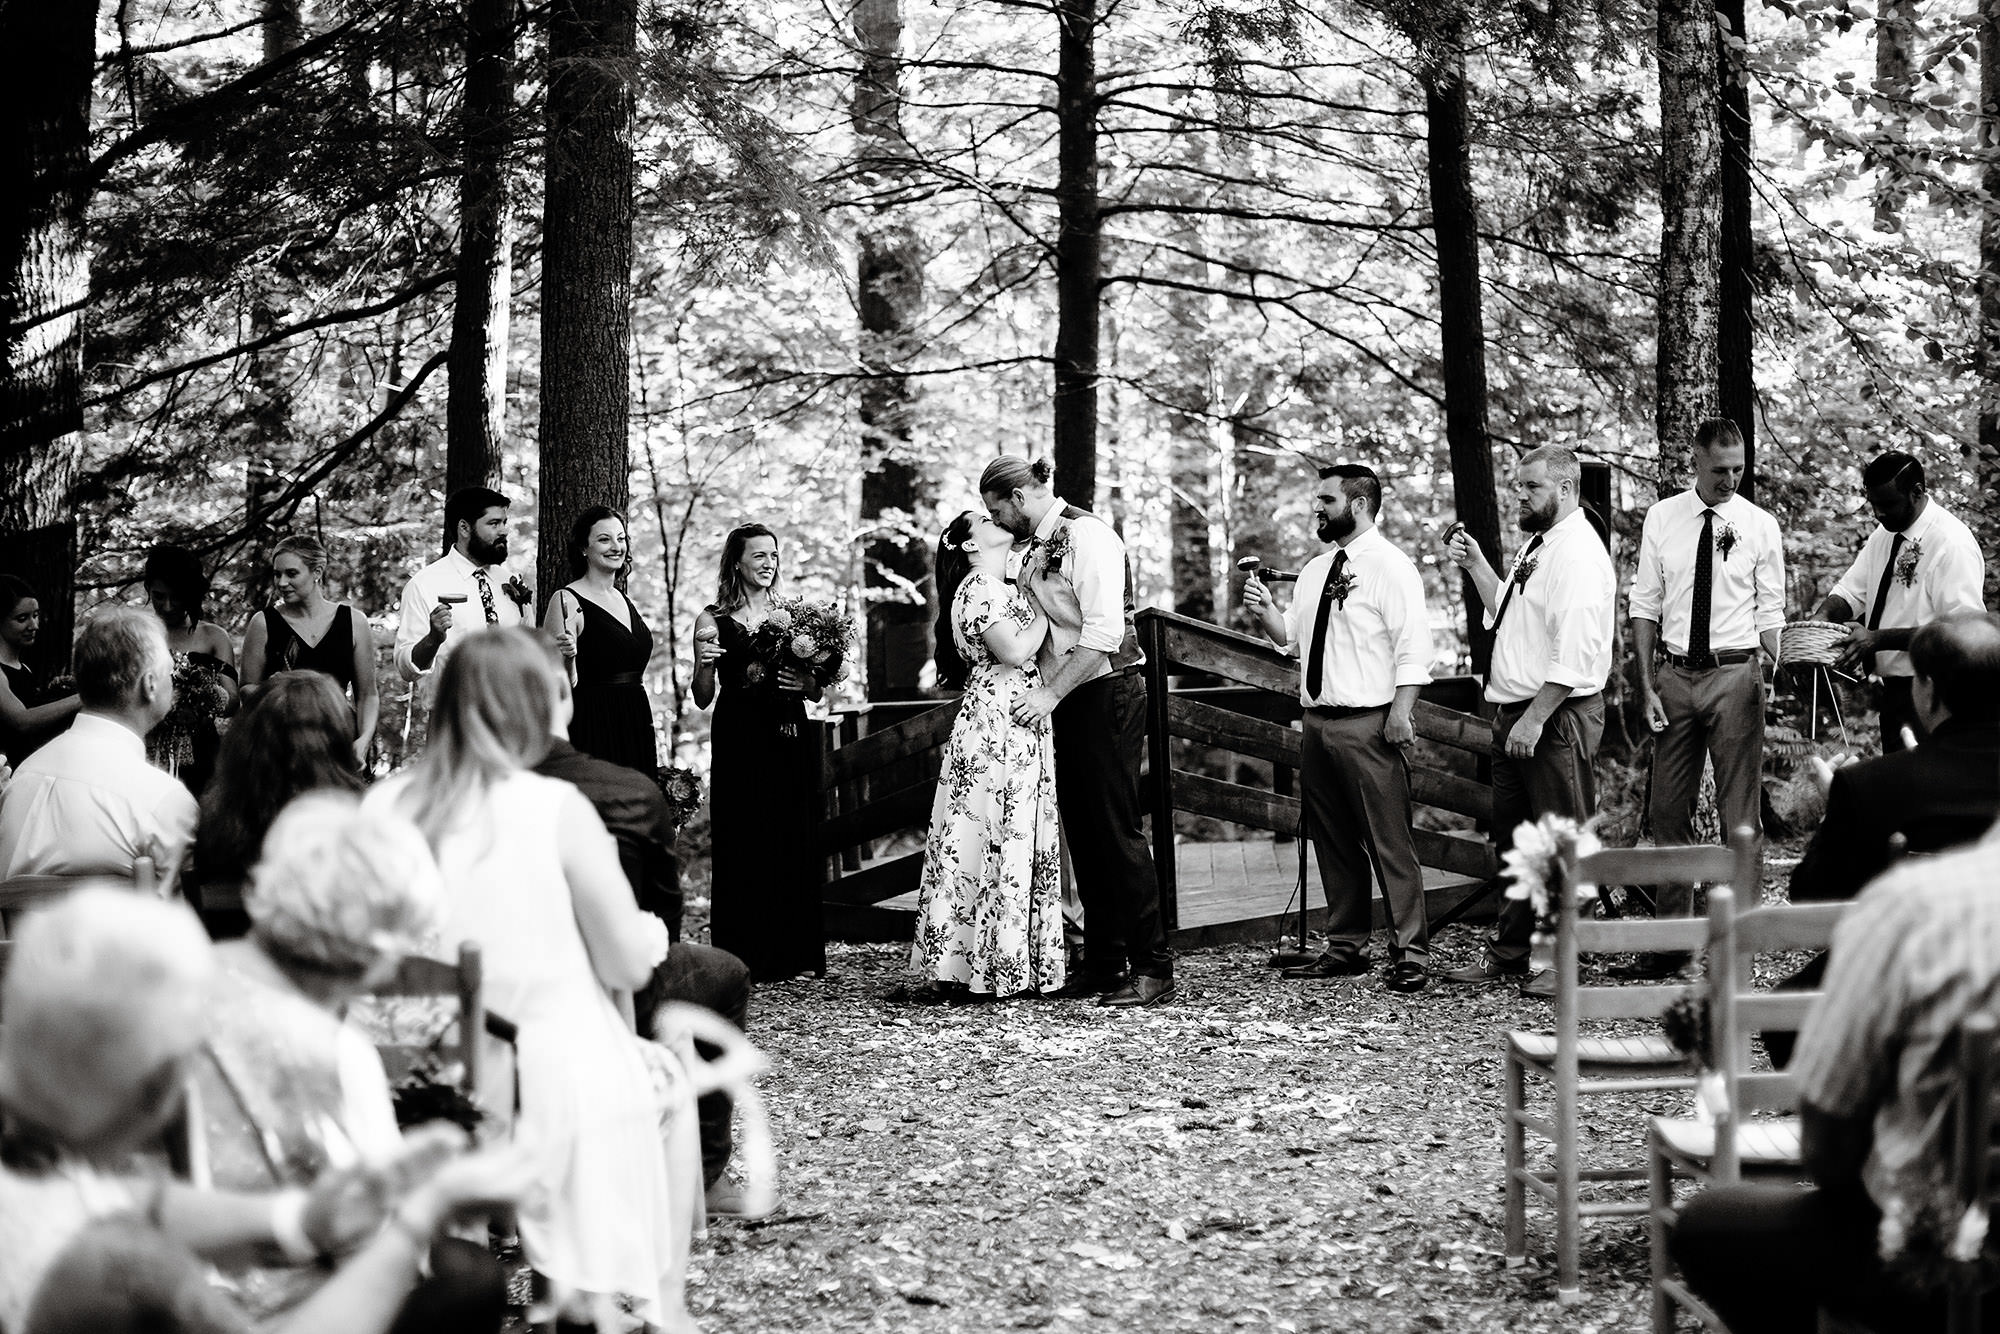 The bride and groom share their first kiss following the ceremony during their Hulbert Outdoor Center wedding.